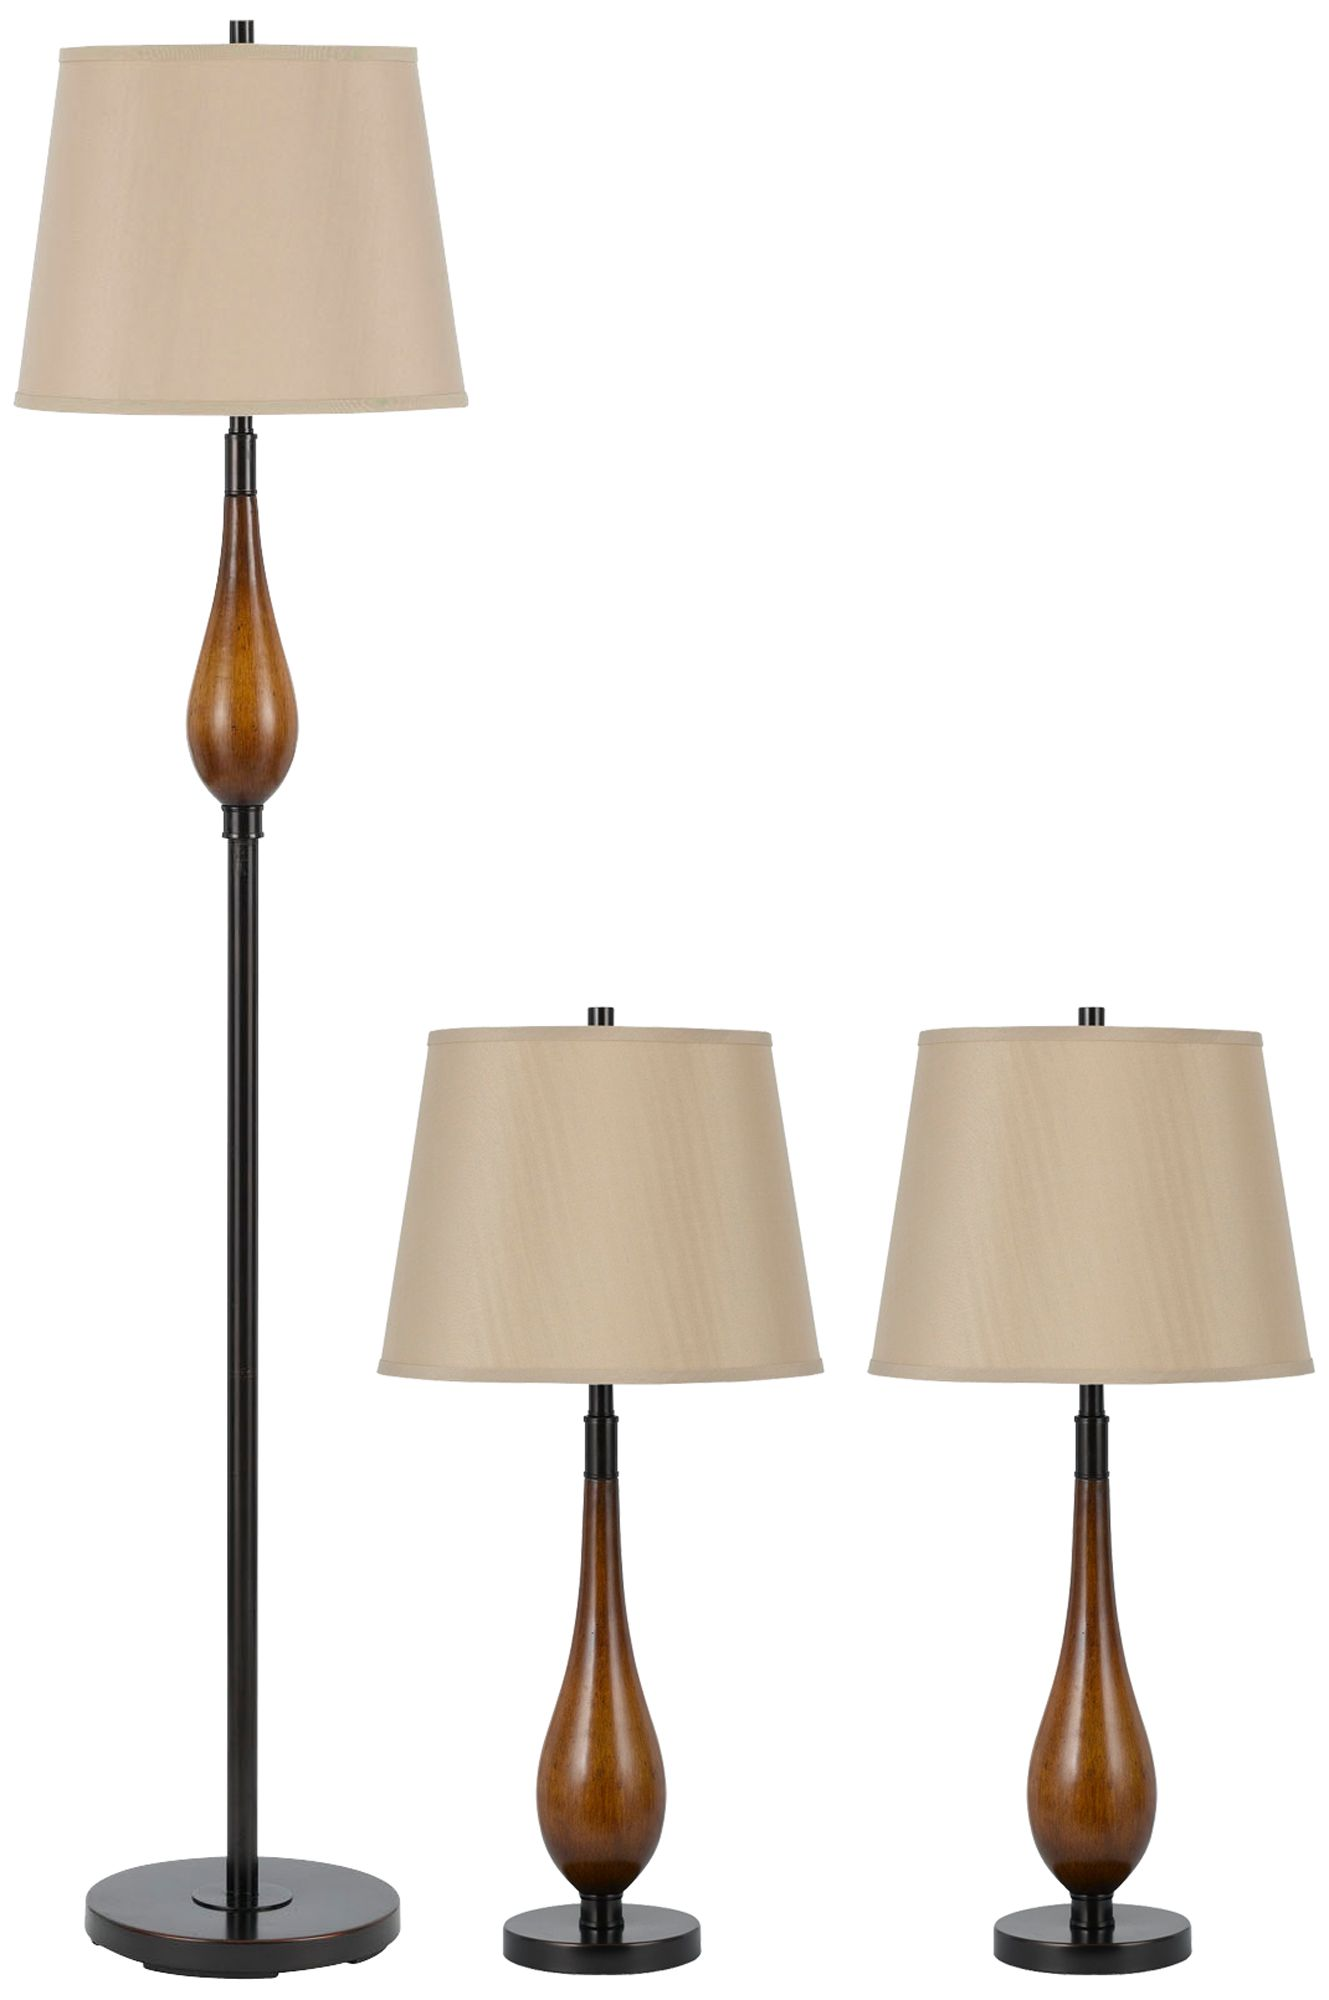 Foscarini Tropico Ellipse Suspension Light Store Cheap Set of 3 Wood Floor and Table Lamps